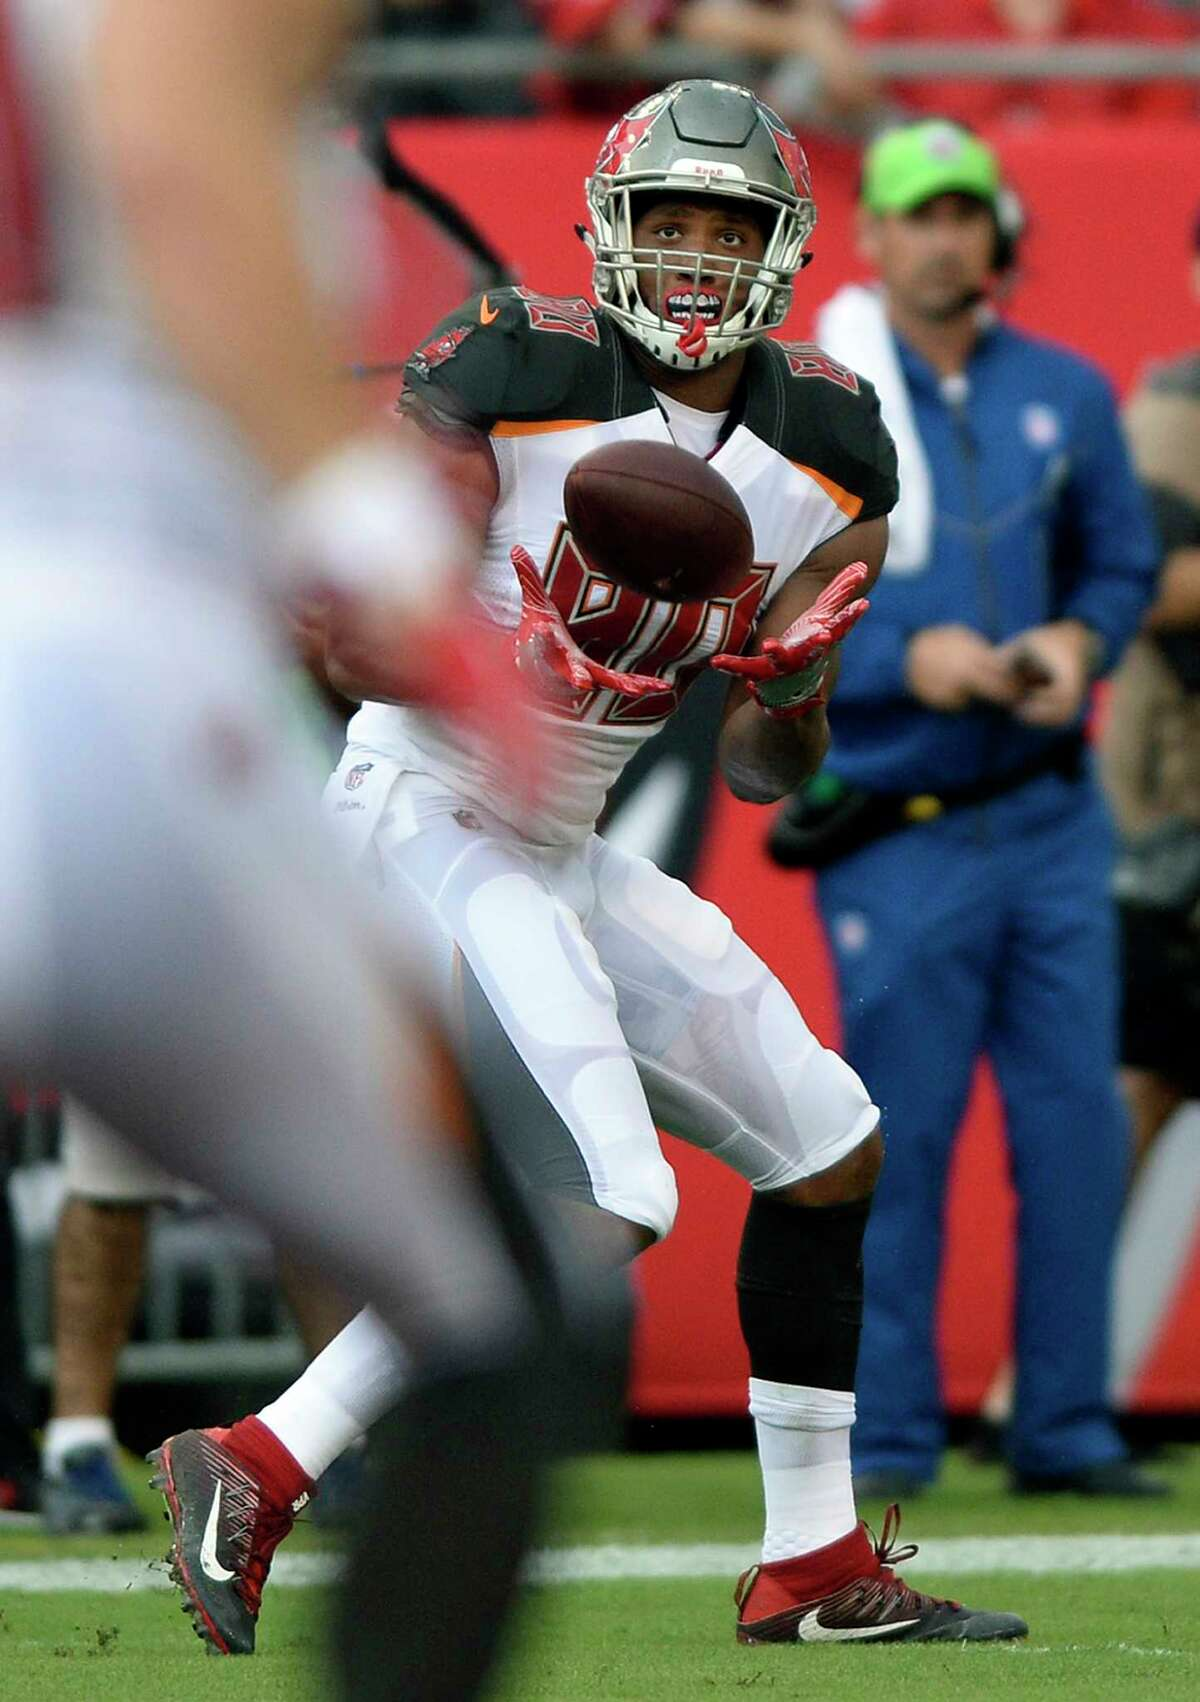 Tampa Bay Buccaneers tight end O.J. Howard (80) pulls in a 58-yard touchdown reception during the first quarter of an NFL football game against the New York Giants Sunday, Oct. 1, 2017, in Tampa, Fla. (AP Photo/Jason Behnken) ORG XMIT: TPS107